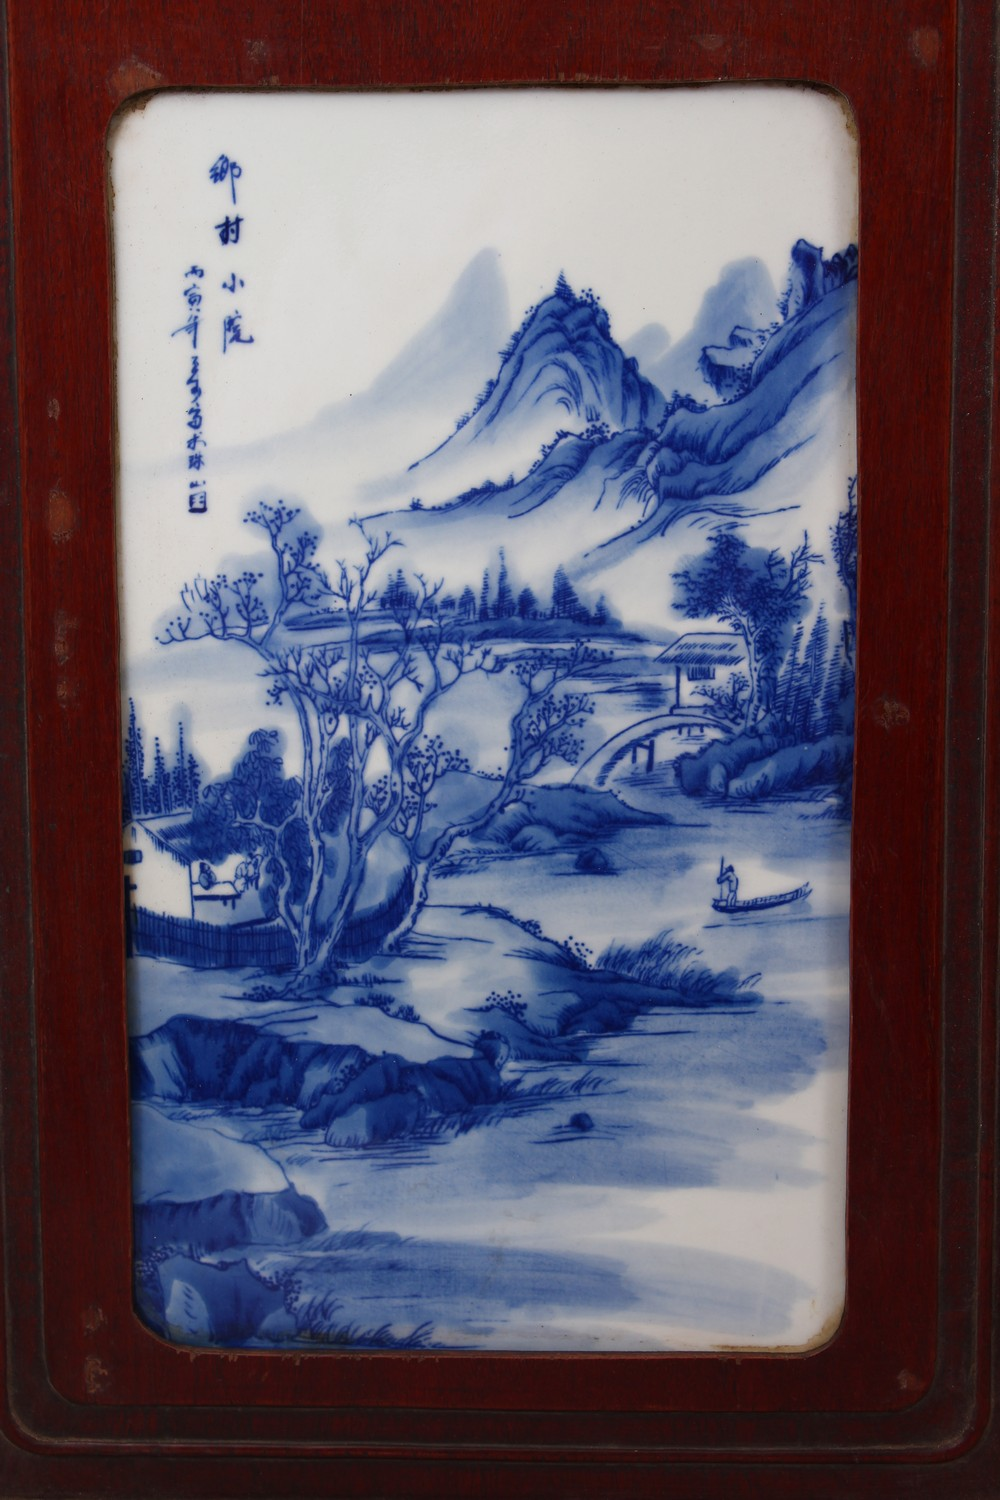 Lot 675 - A GOOD LARGE PAIR OF CHINESE BLUE & WHITE HARDWOOD FRAMED PORCELAIN PANELS, each panel inset with